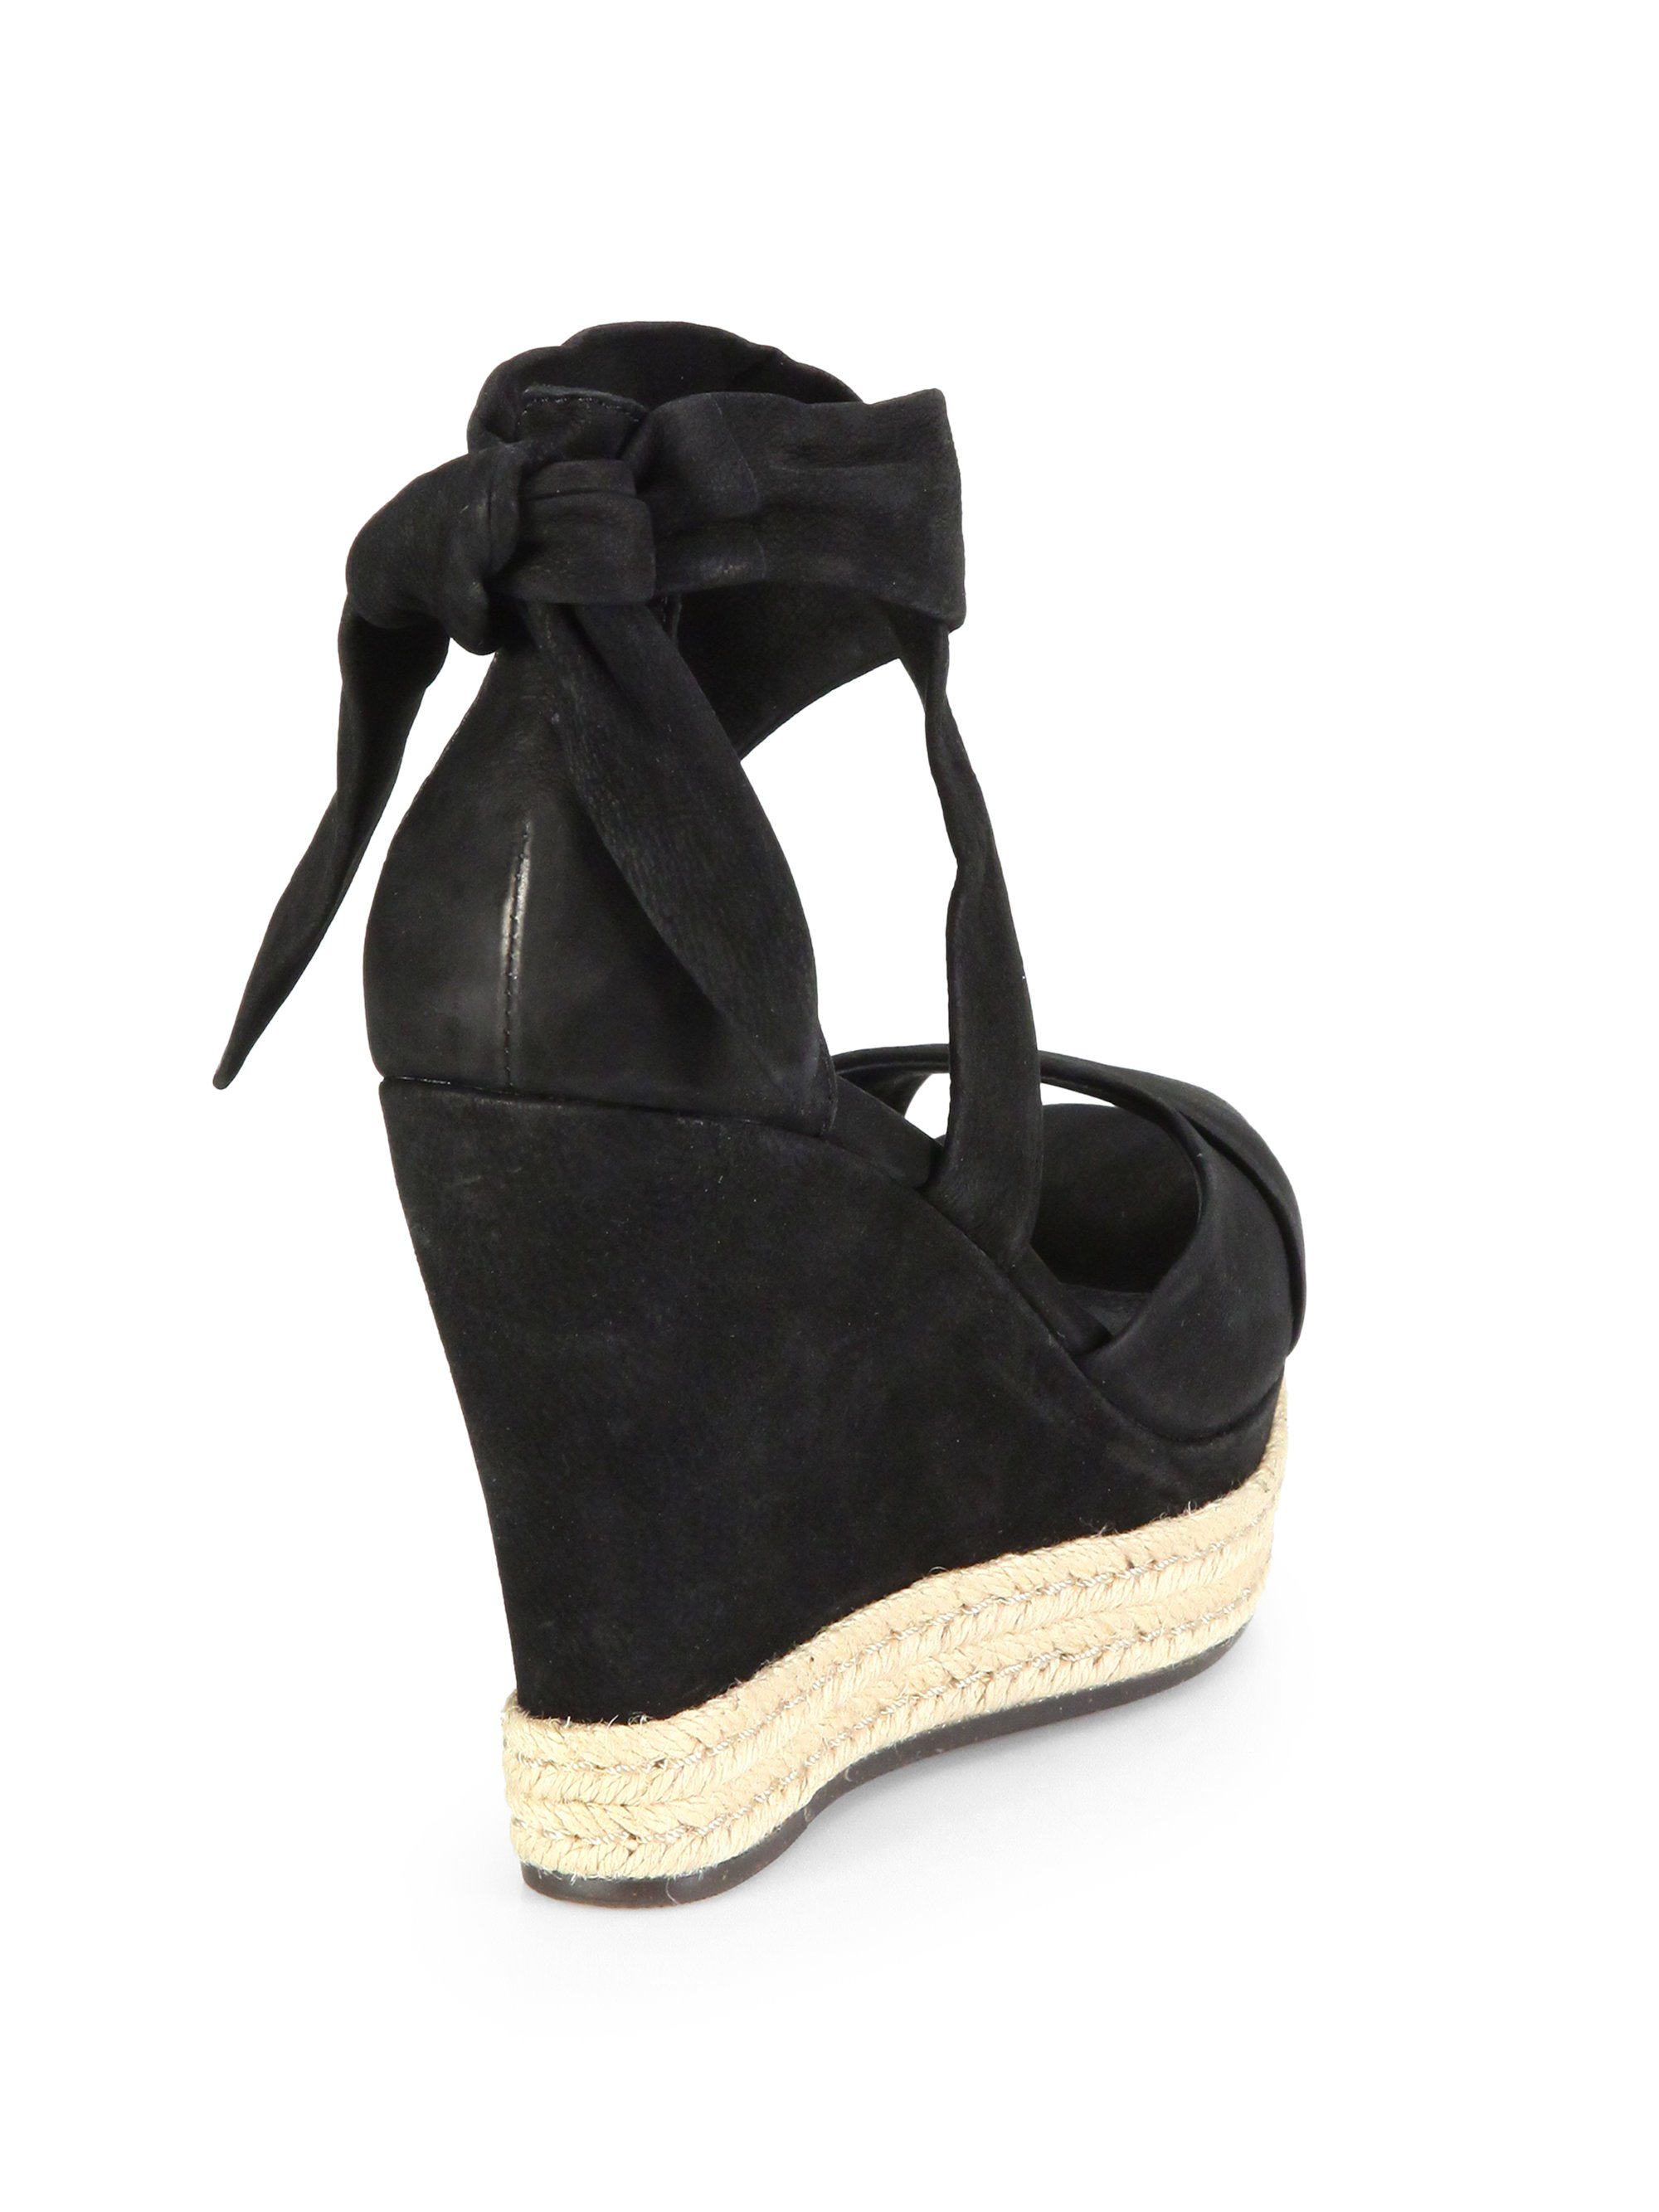 Lyst Ugg Lucy Suede Tie Up Wedge Sandals In Black